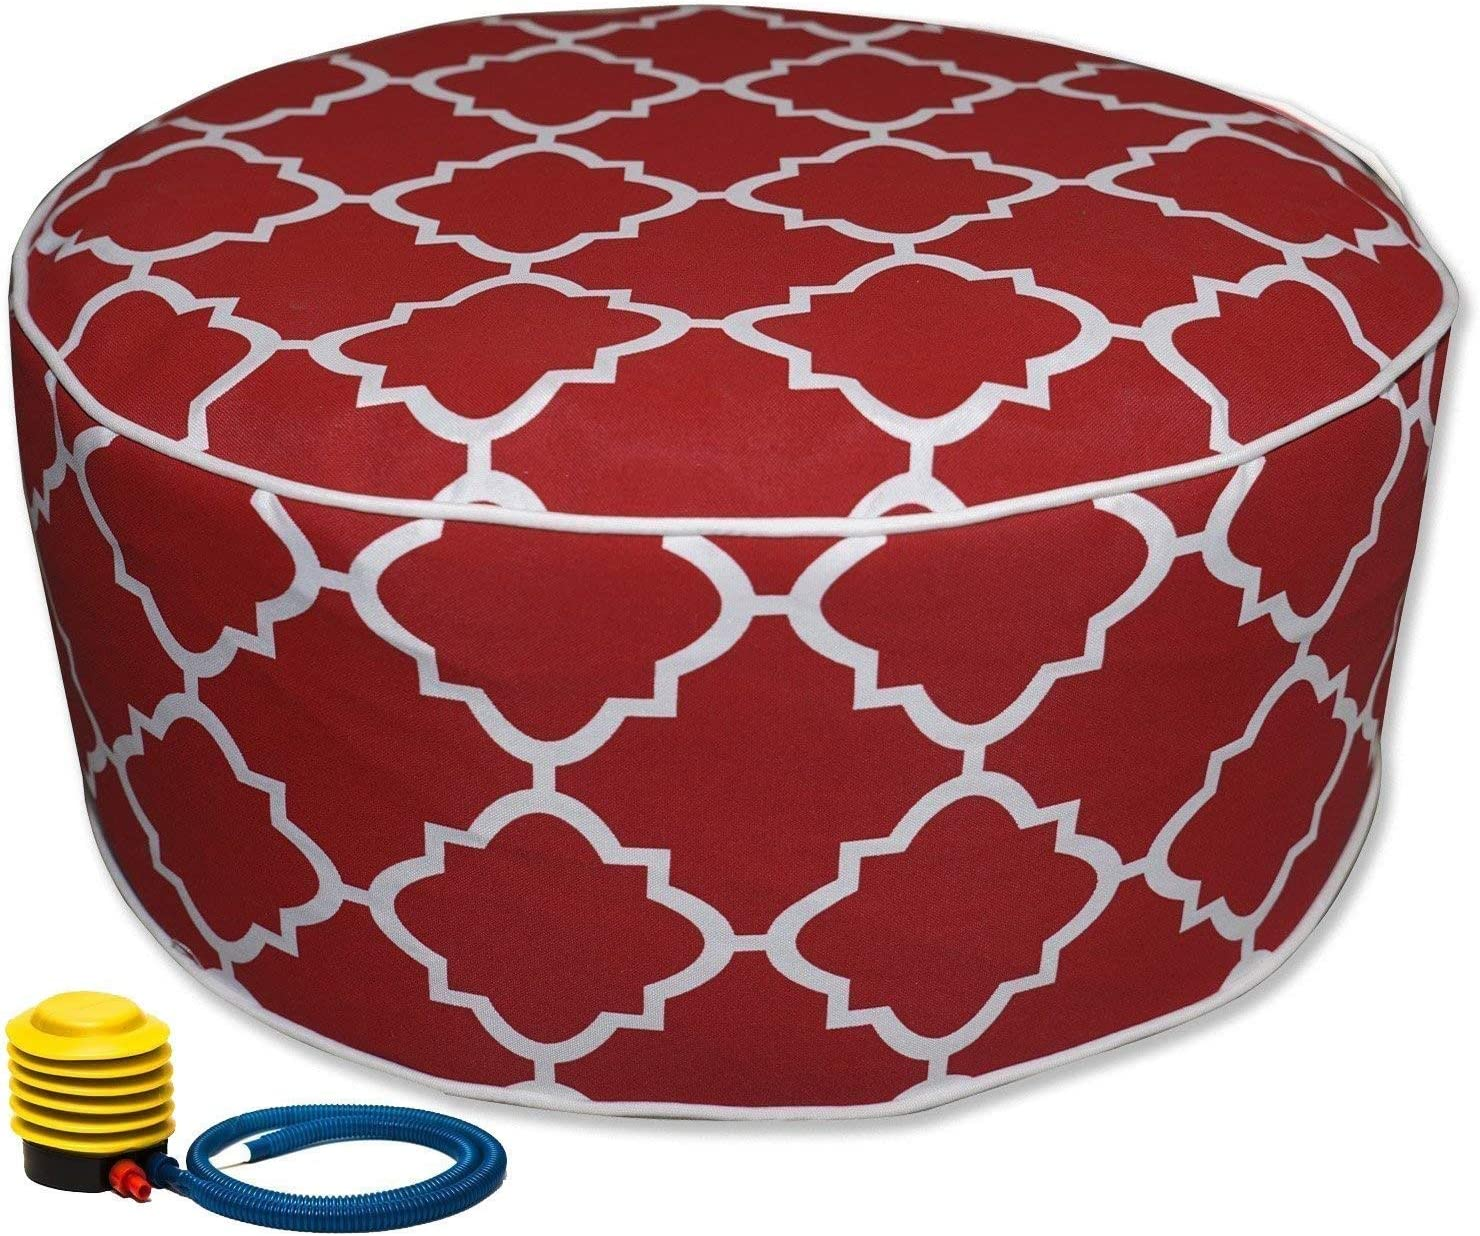 Kozyard Inflatable Stool Ottoman Used for Indoor or Outdoor, Kids or Adults, Camping or Home(Red)